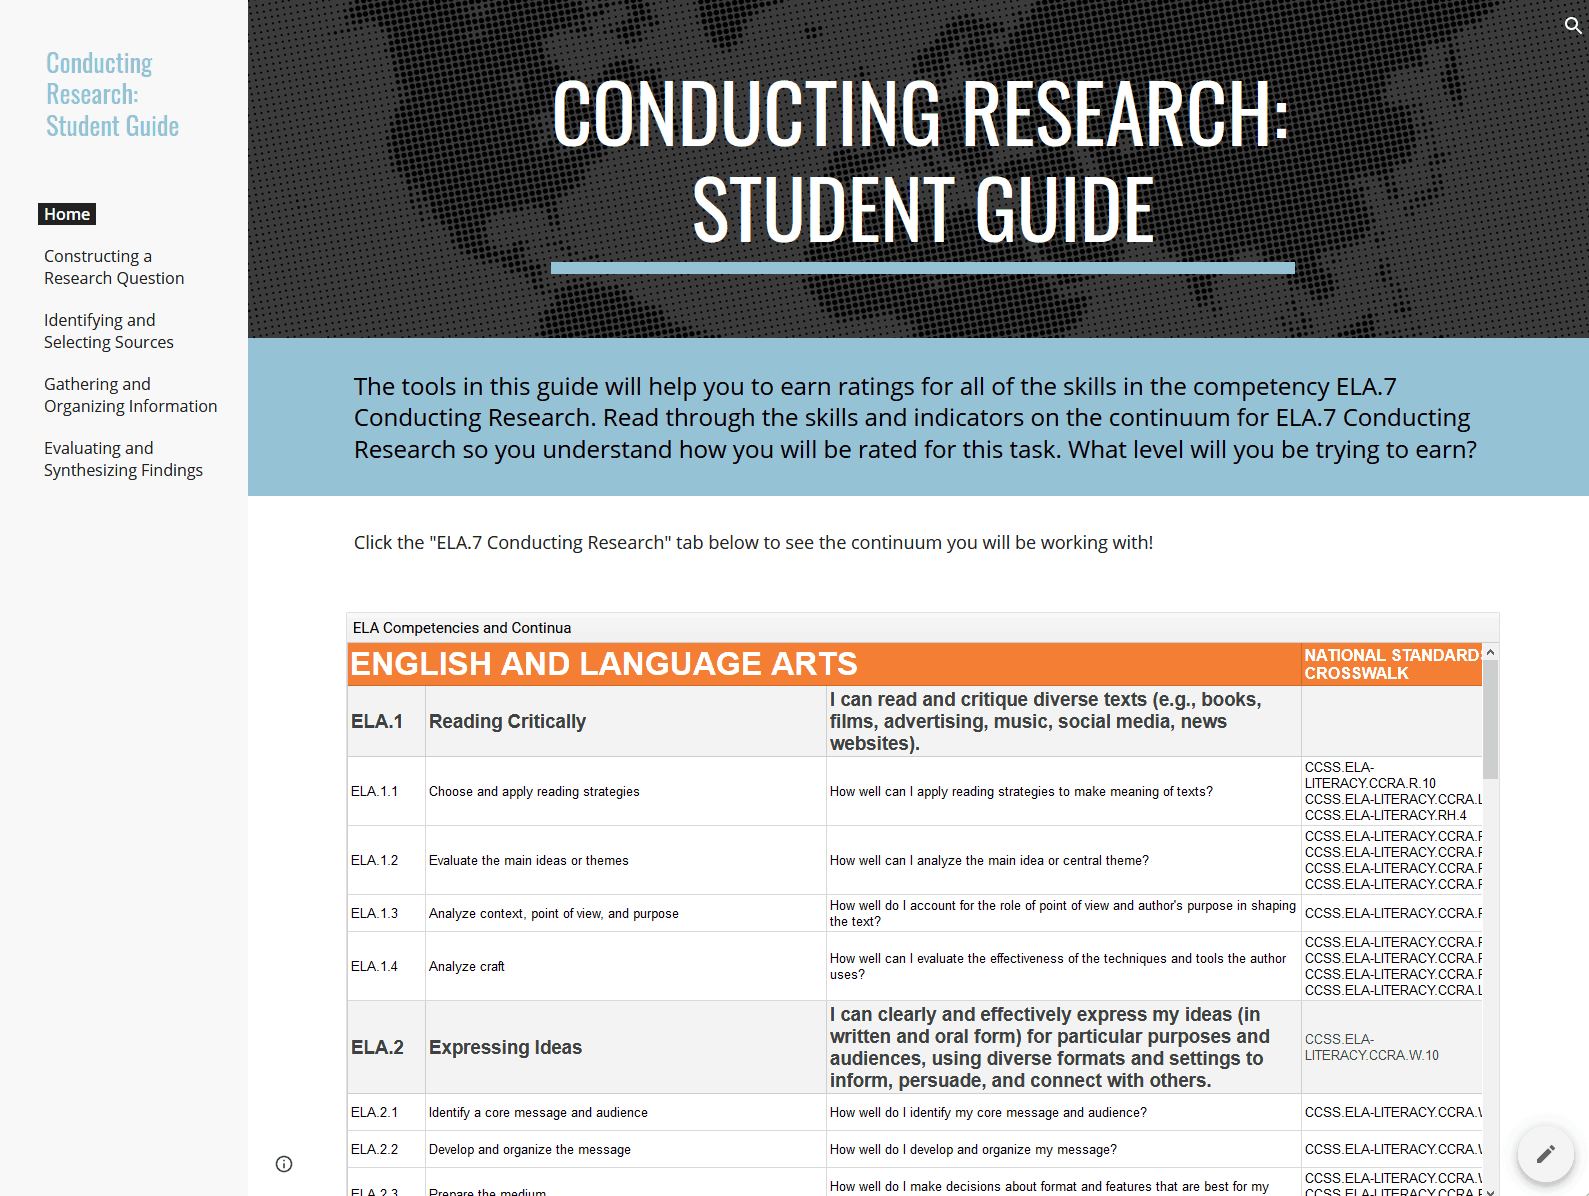 Student Guide: Conducting Research